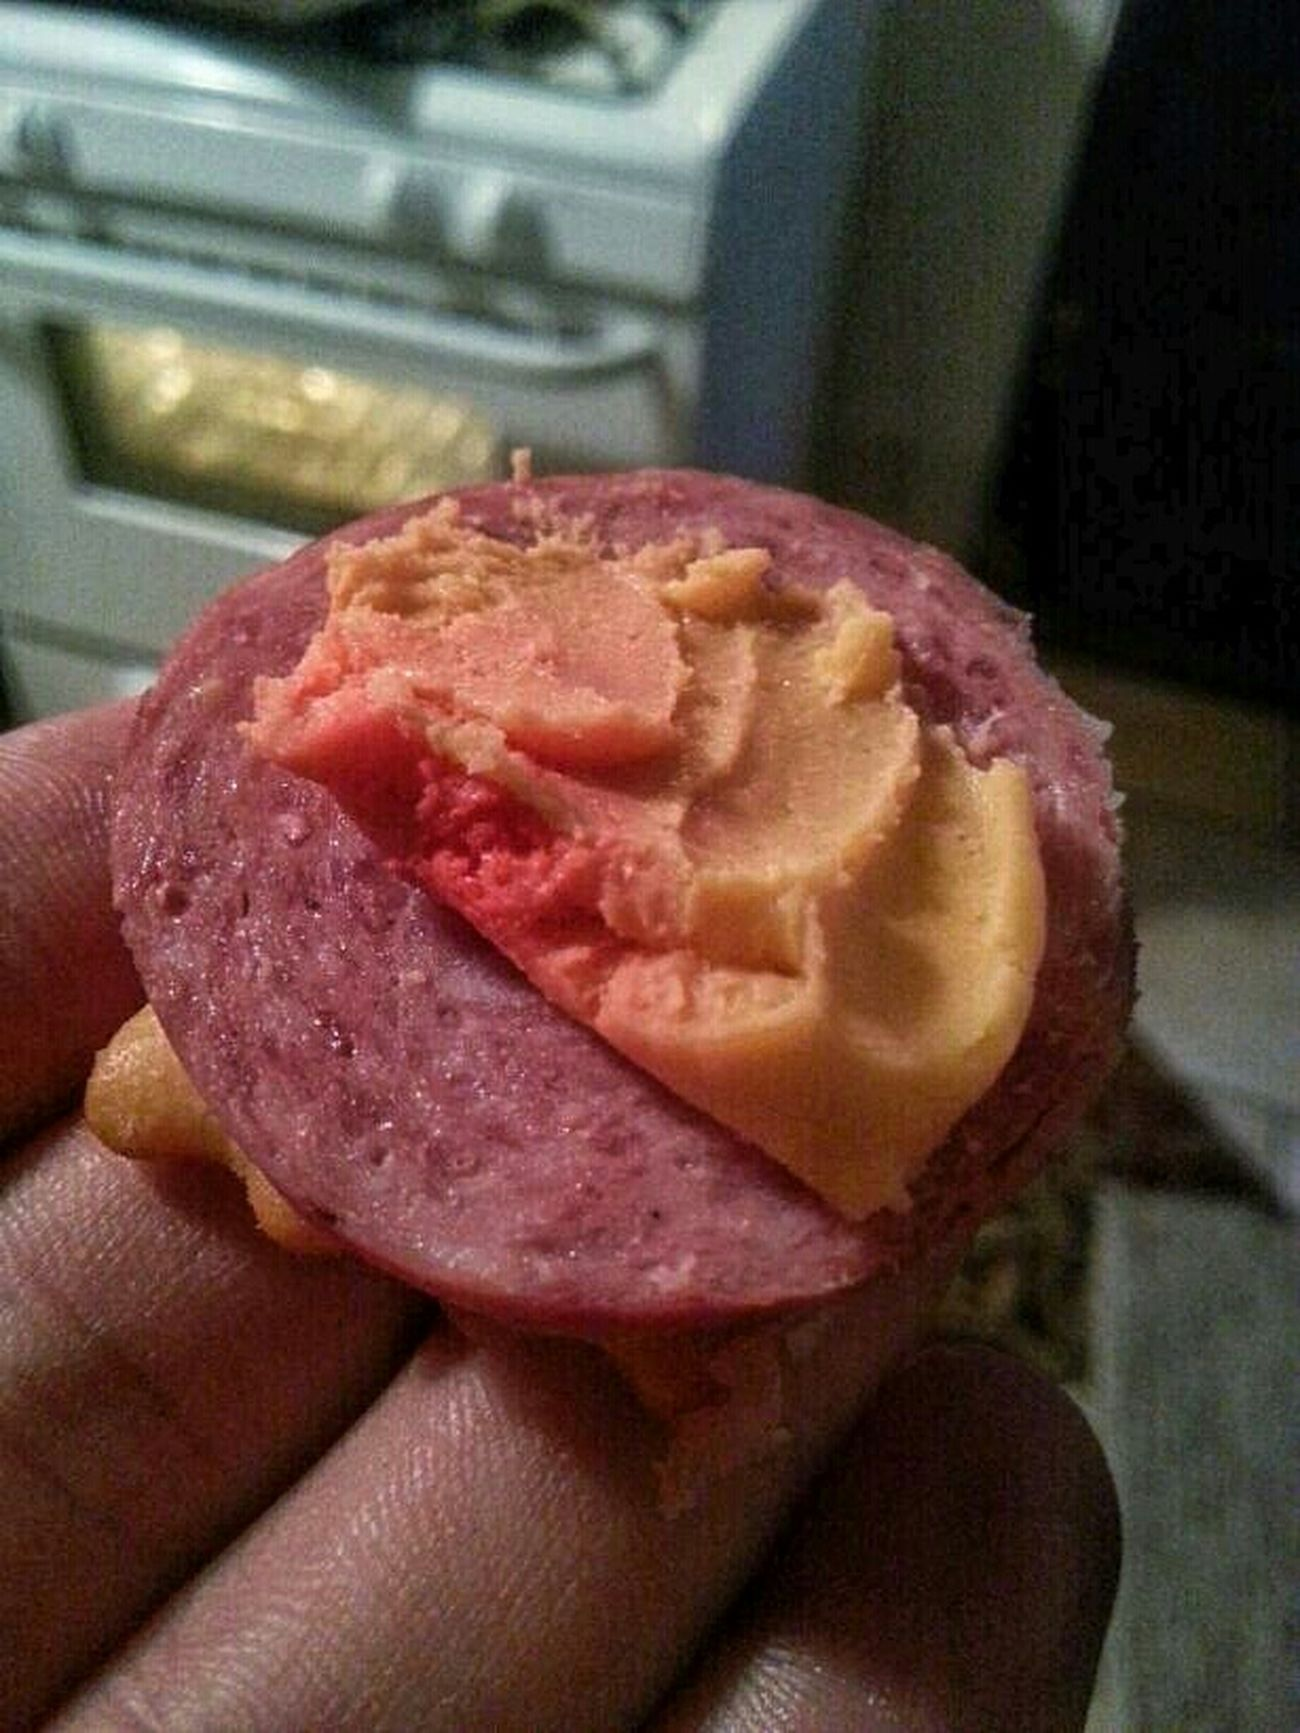 Port wine cheese & summer sausage on chicken-in-a-biscuit mmmmm Food Cheese Foodporn Sausage Cracker